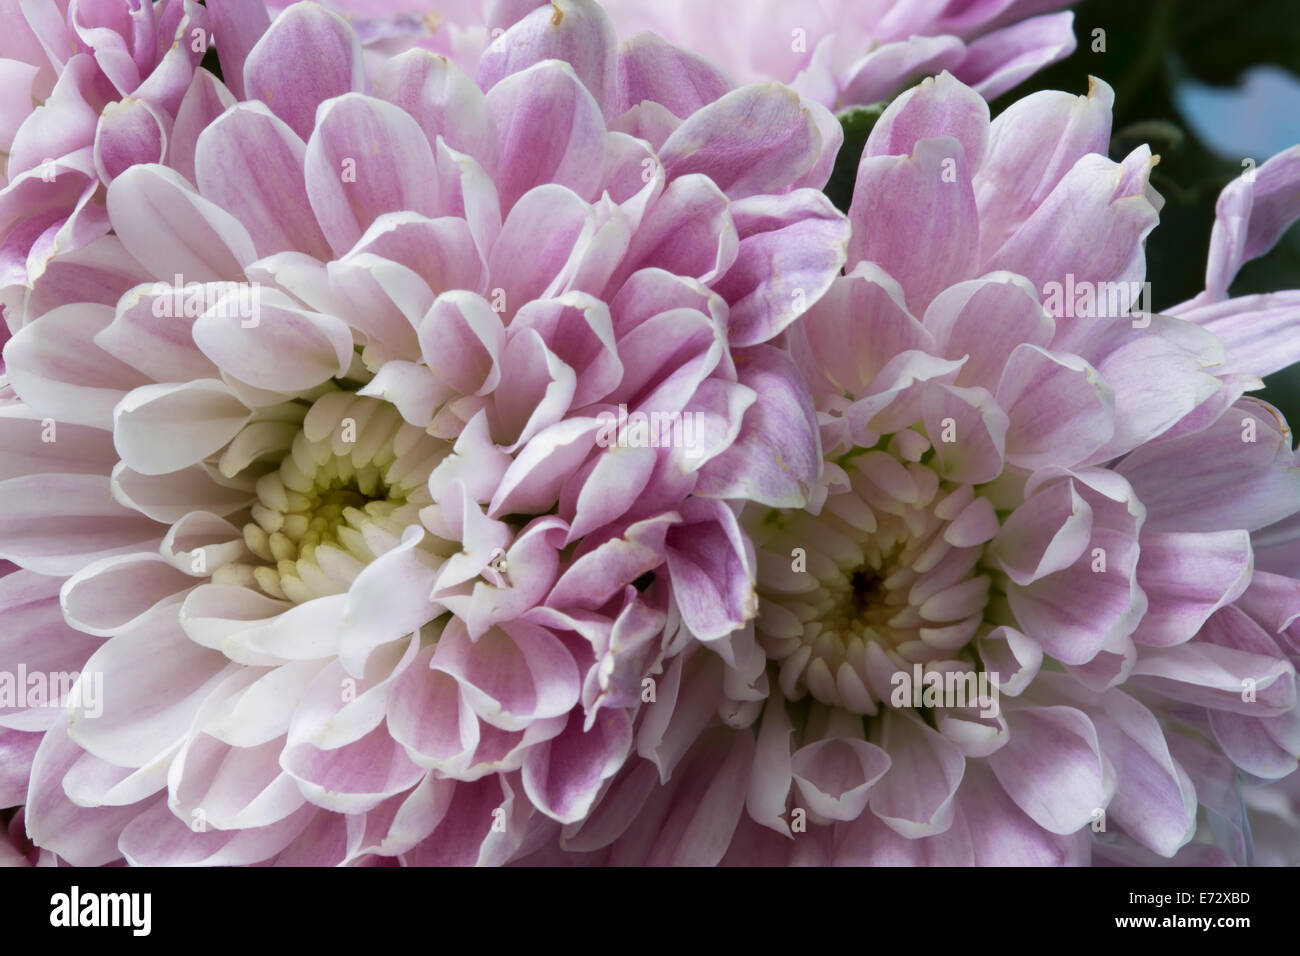 Detail close-up of some pretty pale purple mums. - Stock Image